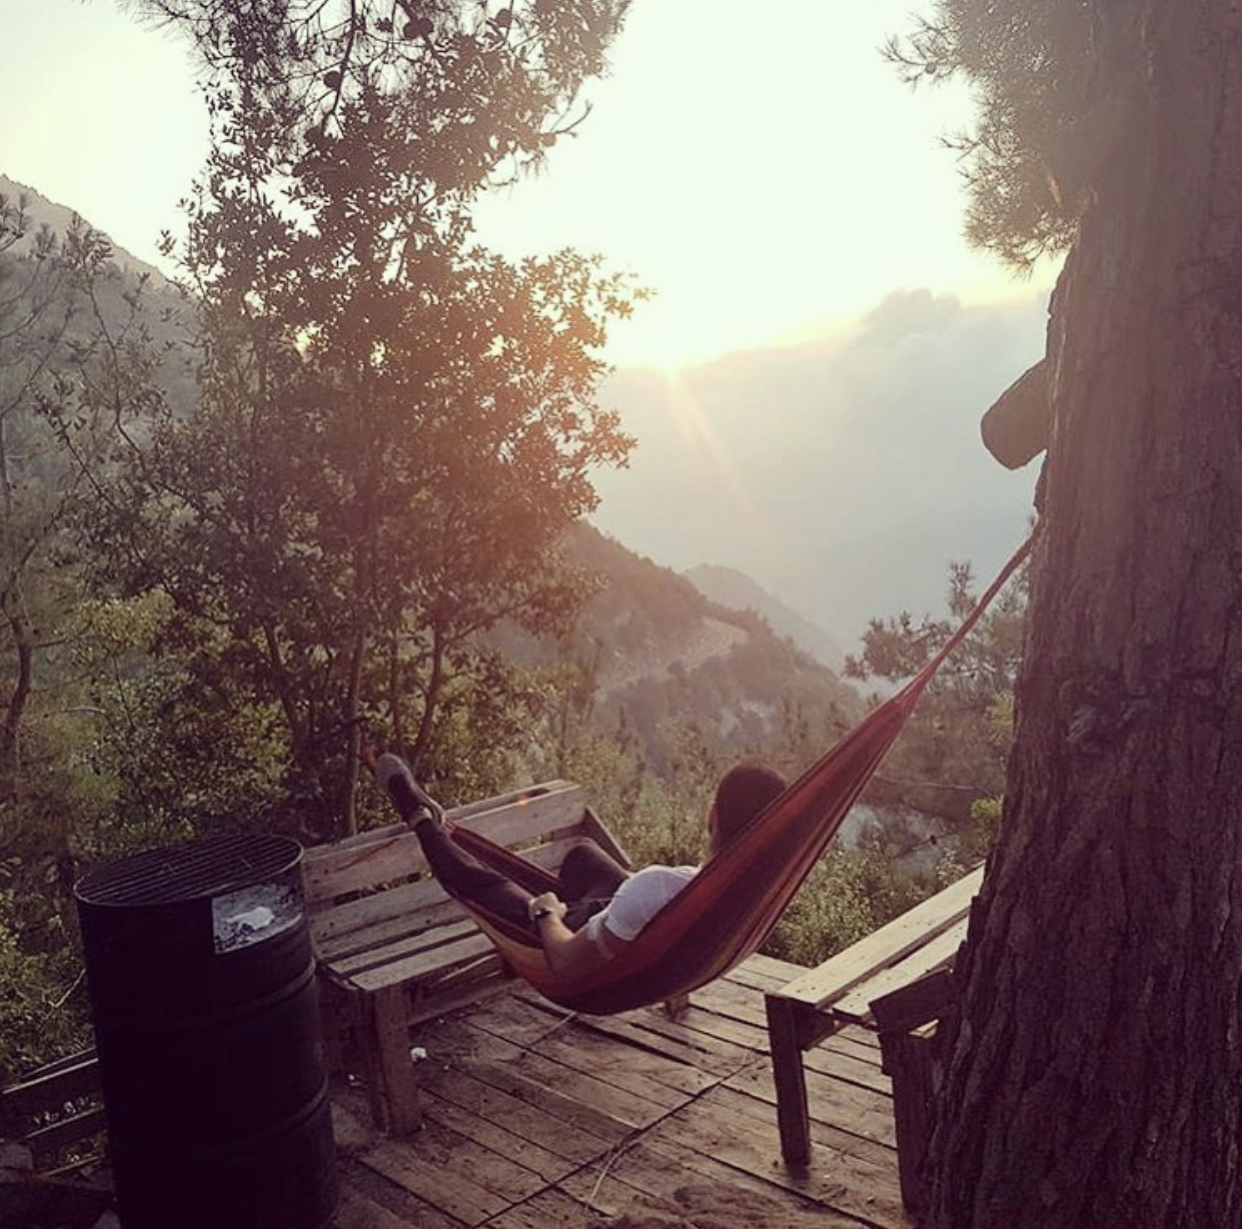 yahchouch-the-cliff-camp-lebanon-traveler